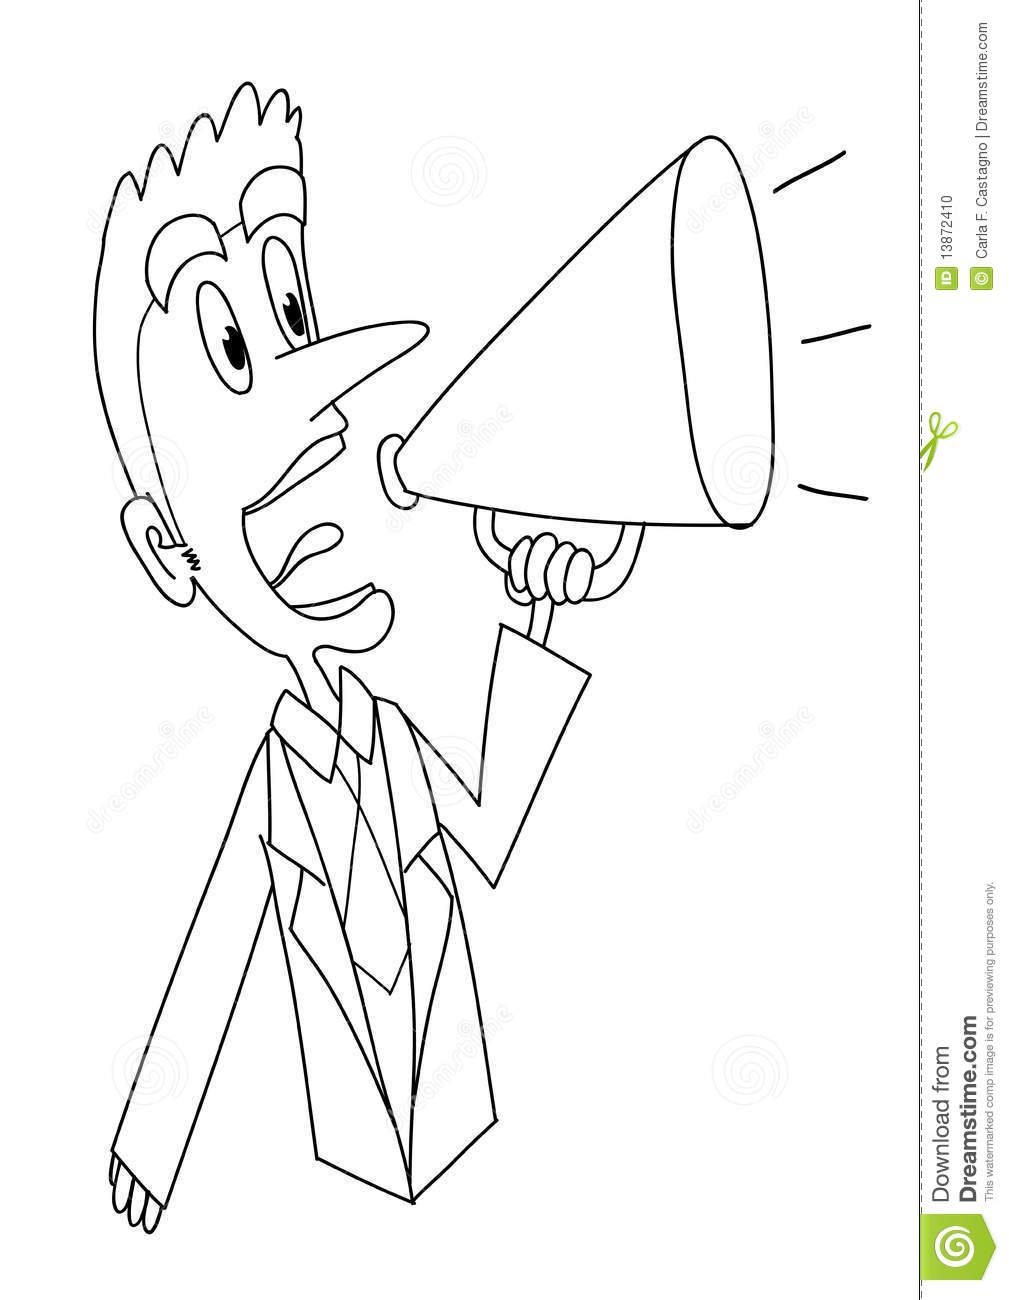 megaphone coloring pages - photo#13